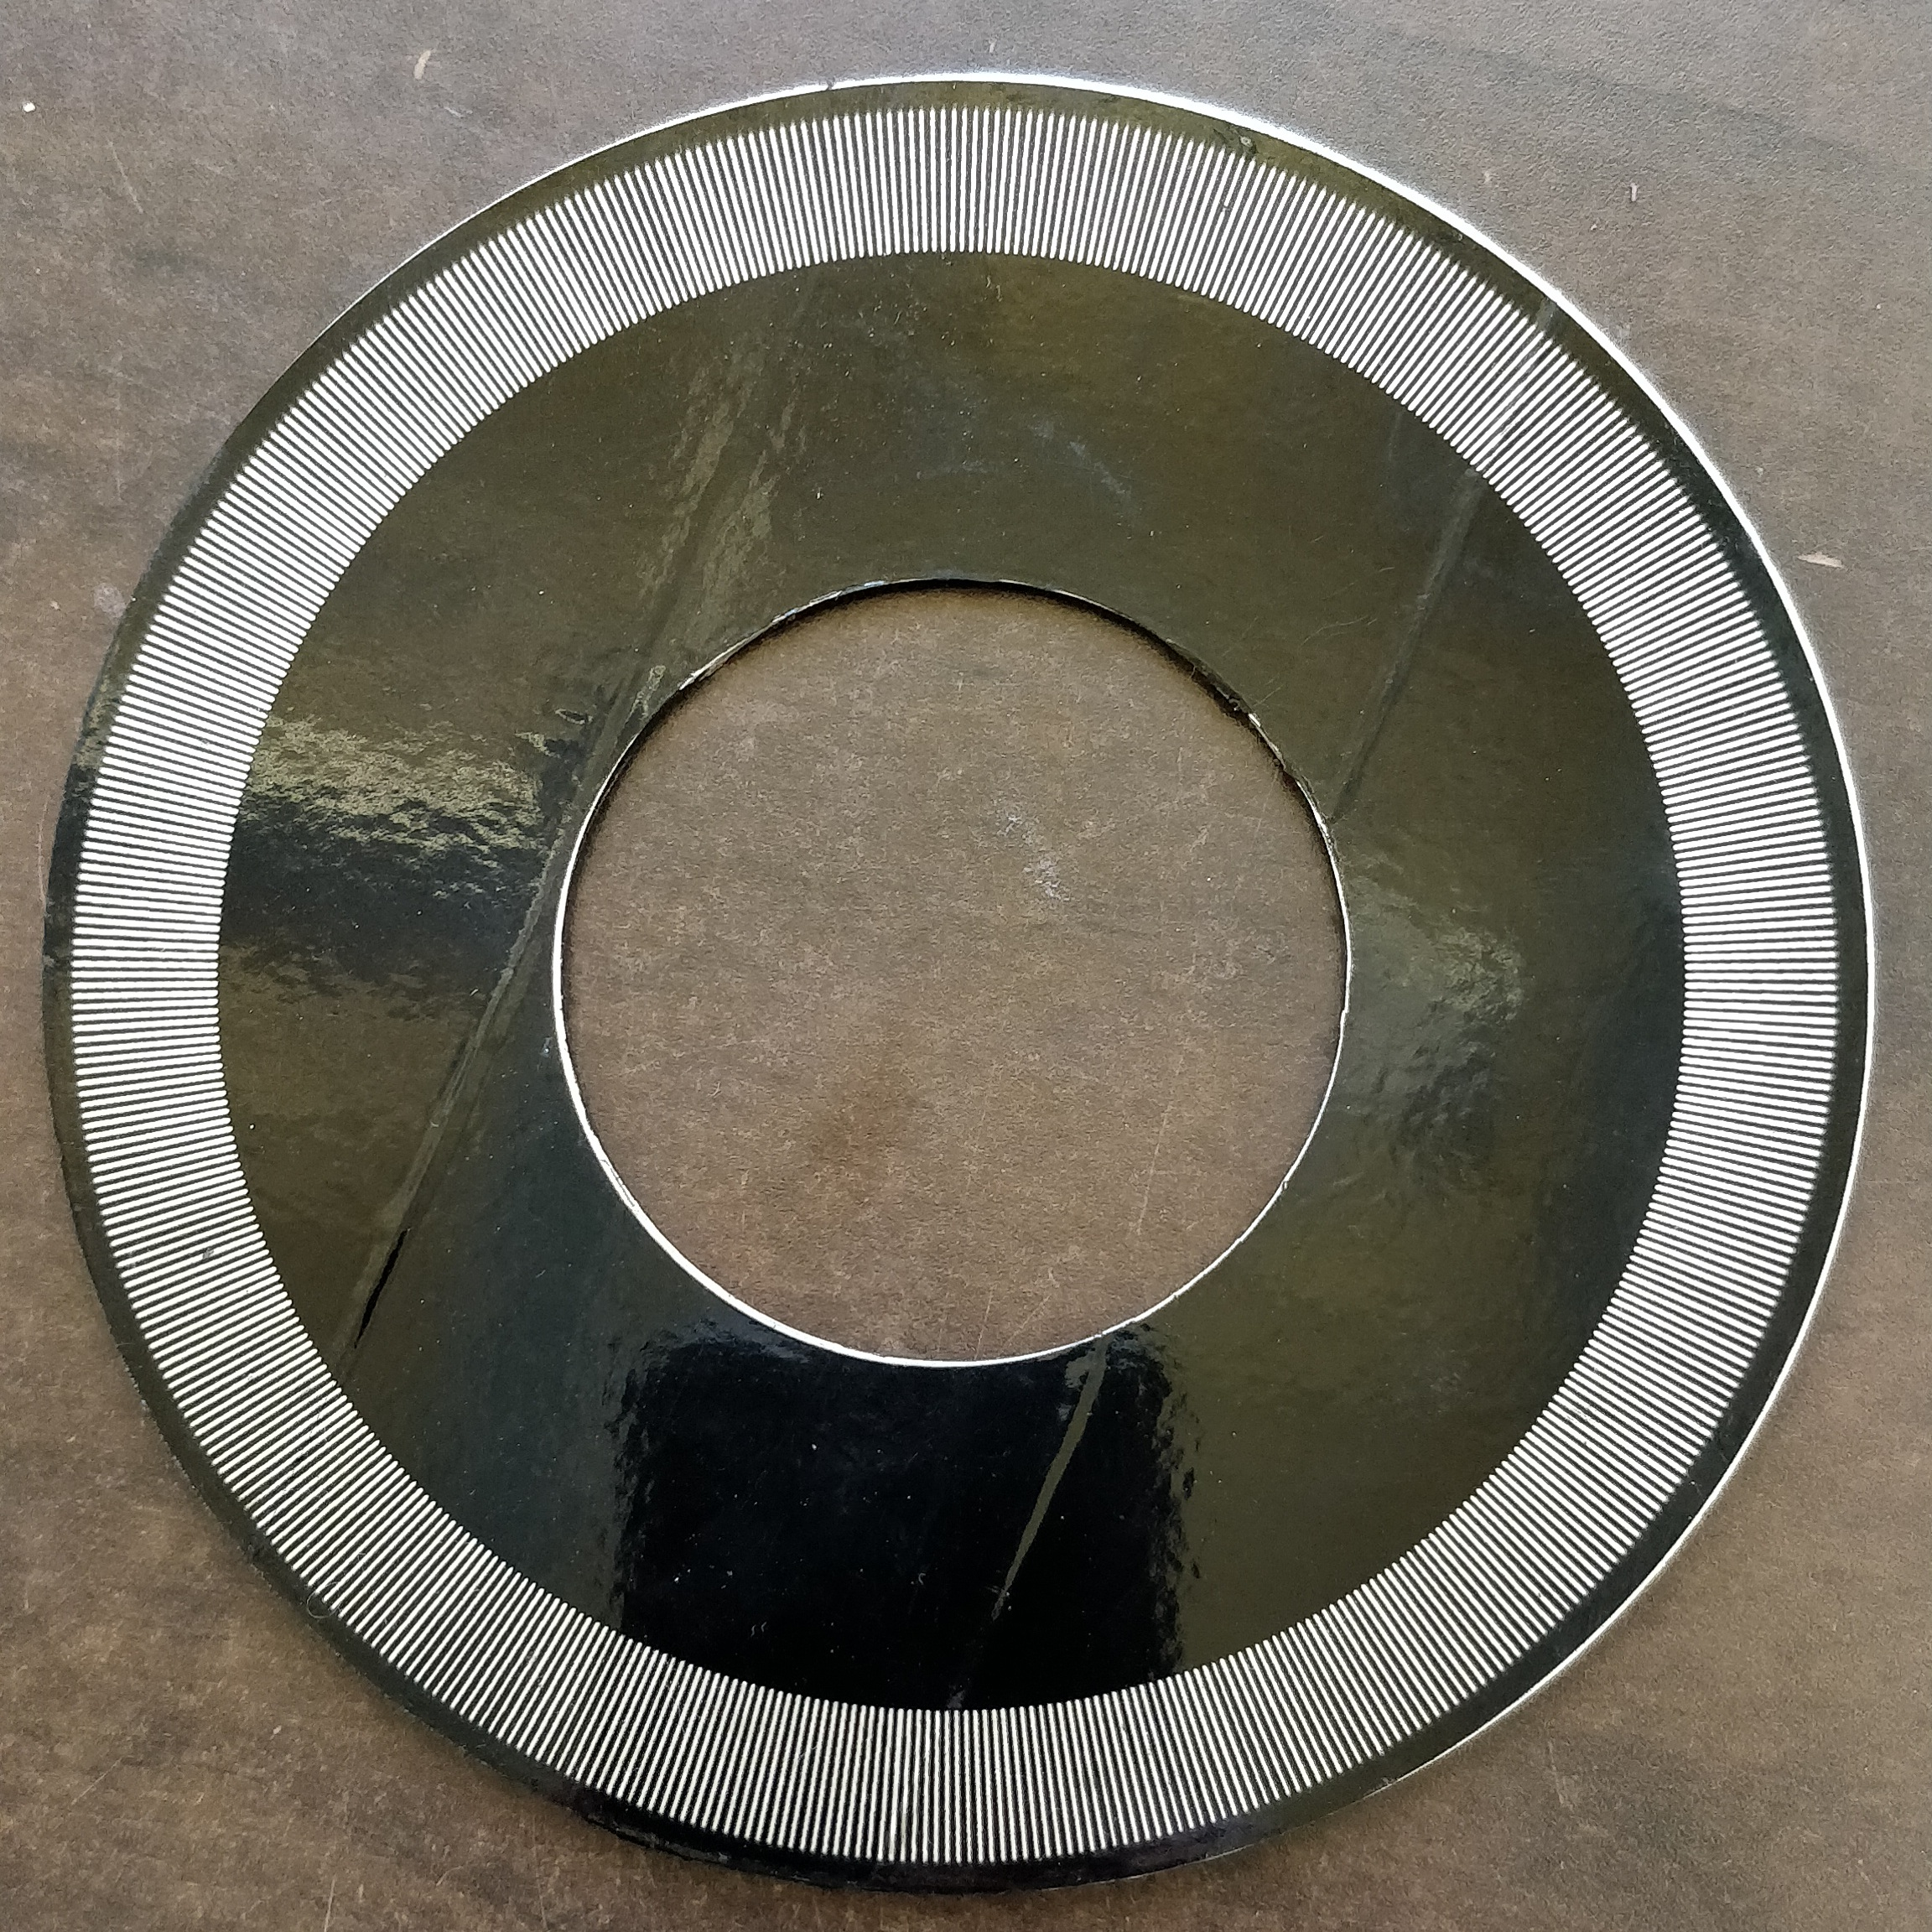 Encoder Disk #3: Acrylic wrapped in aluminum tape and vinyl laser etched